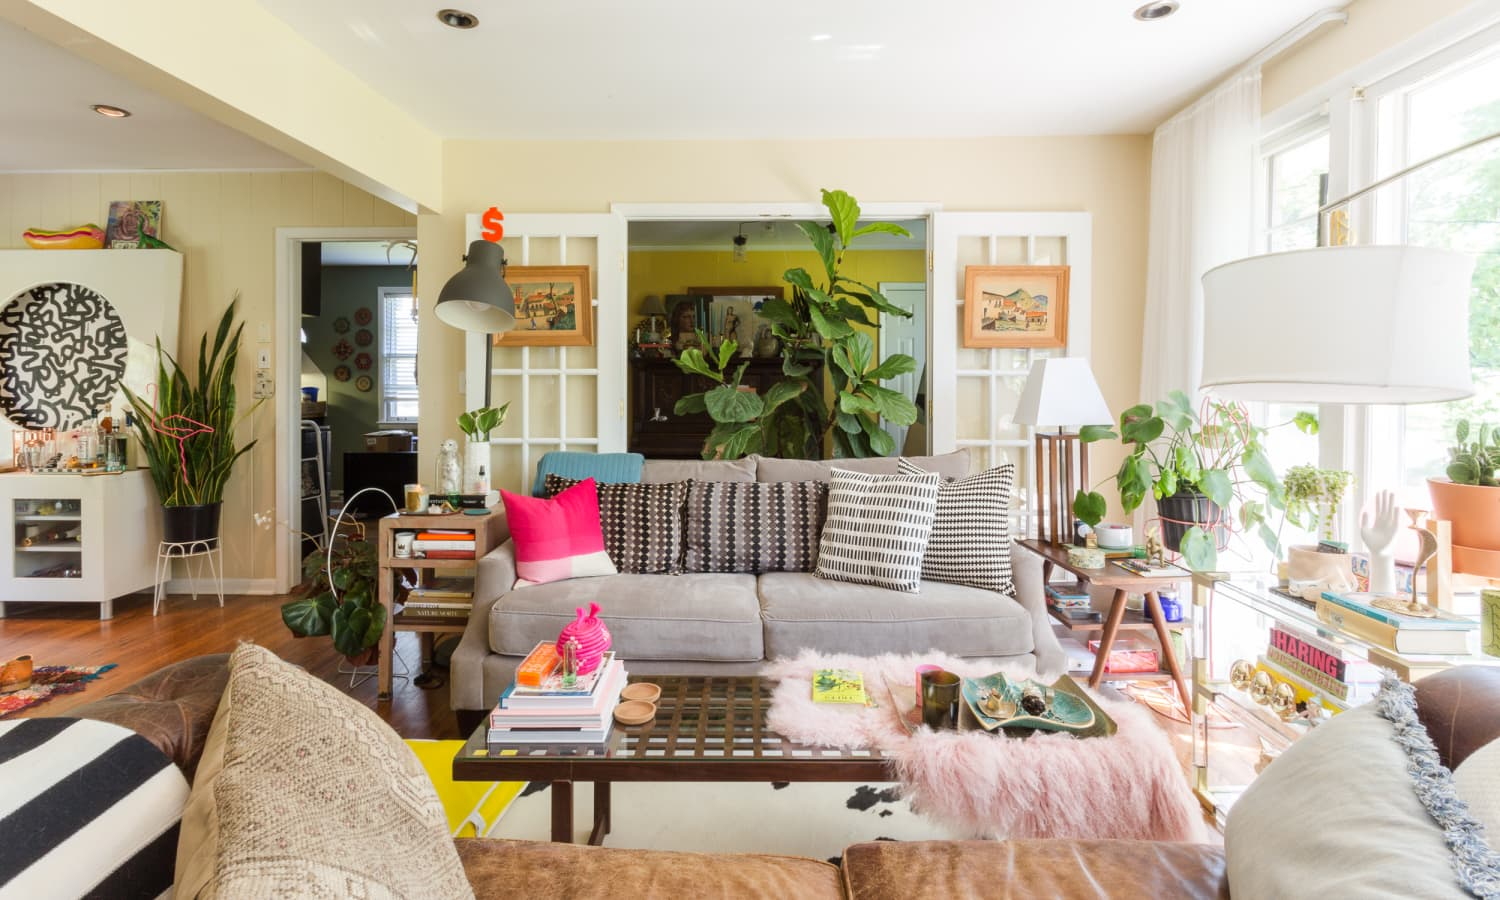 5 Things in Your Living Room that Are Dirtier Than You Think